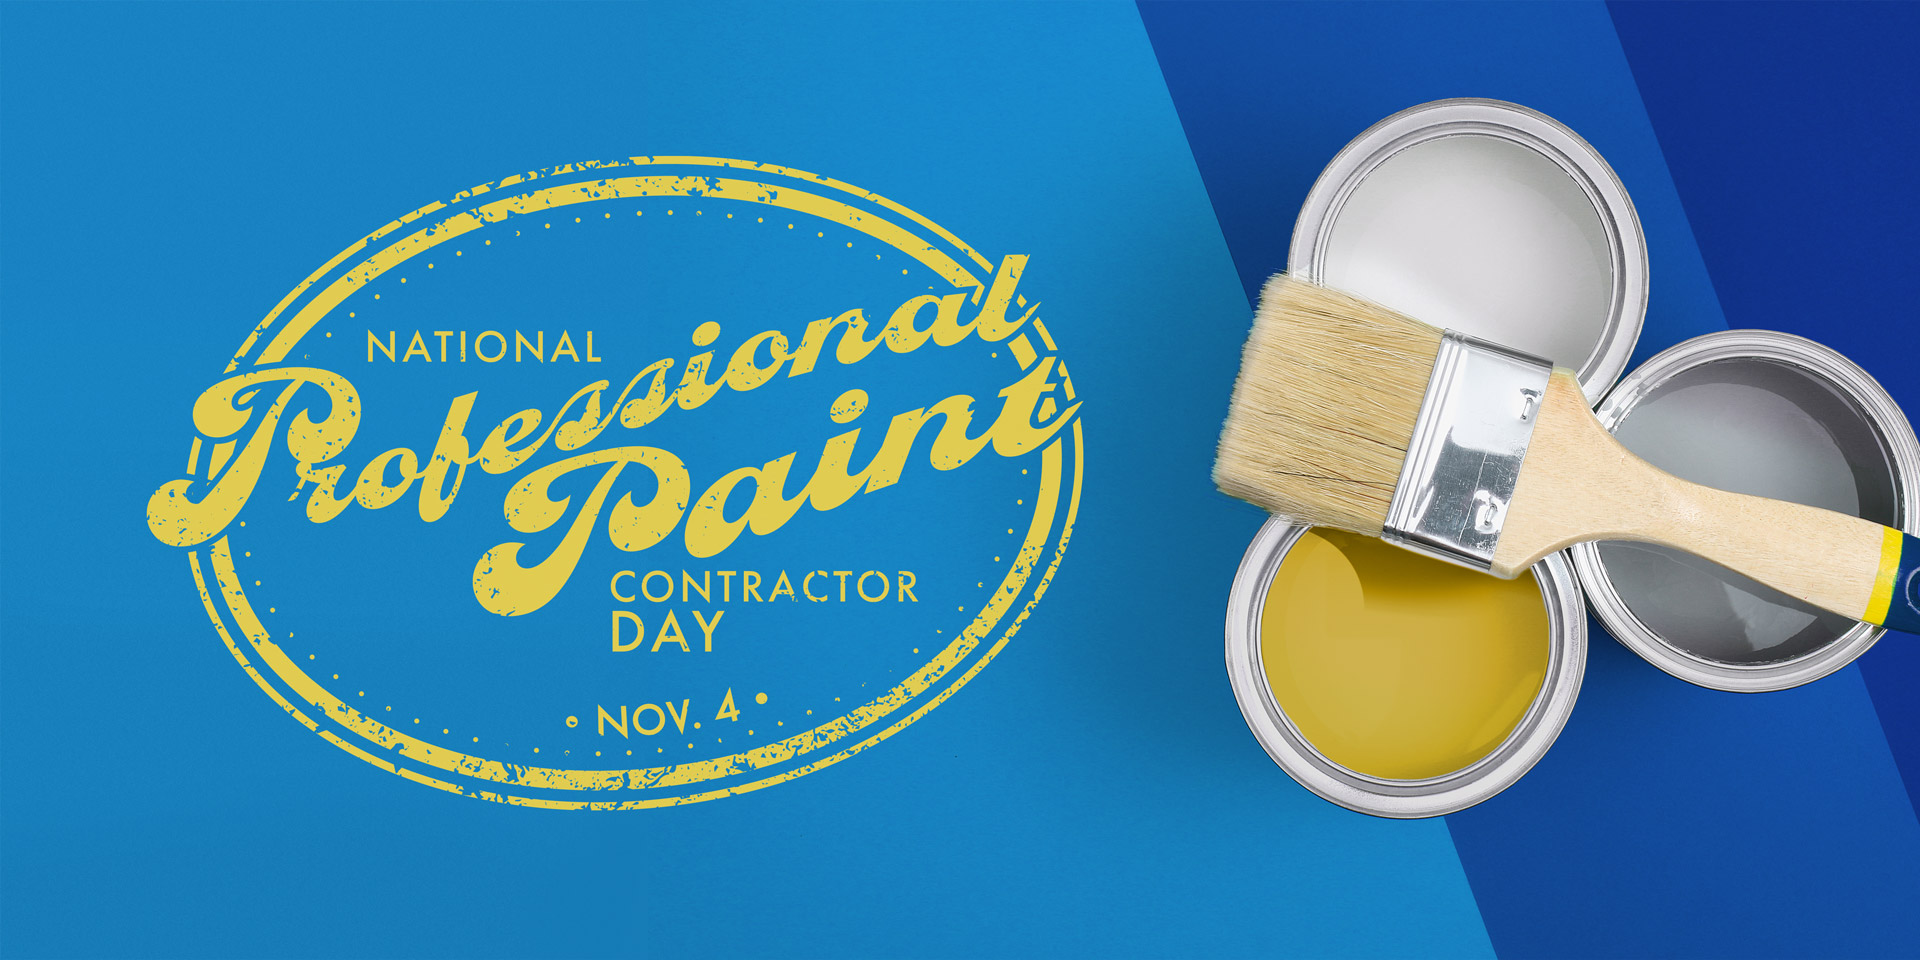 National Professional Paint Contractor Day